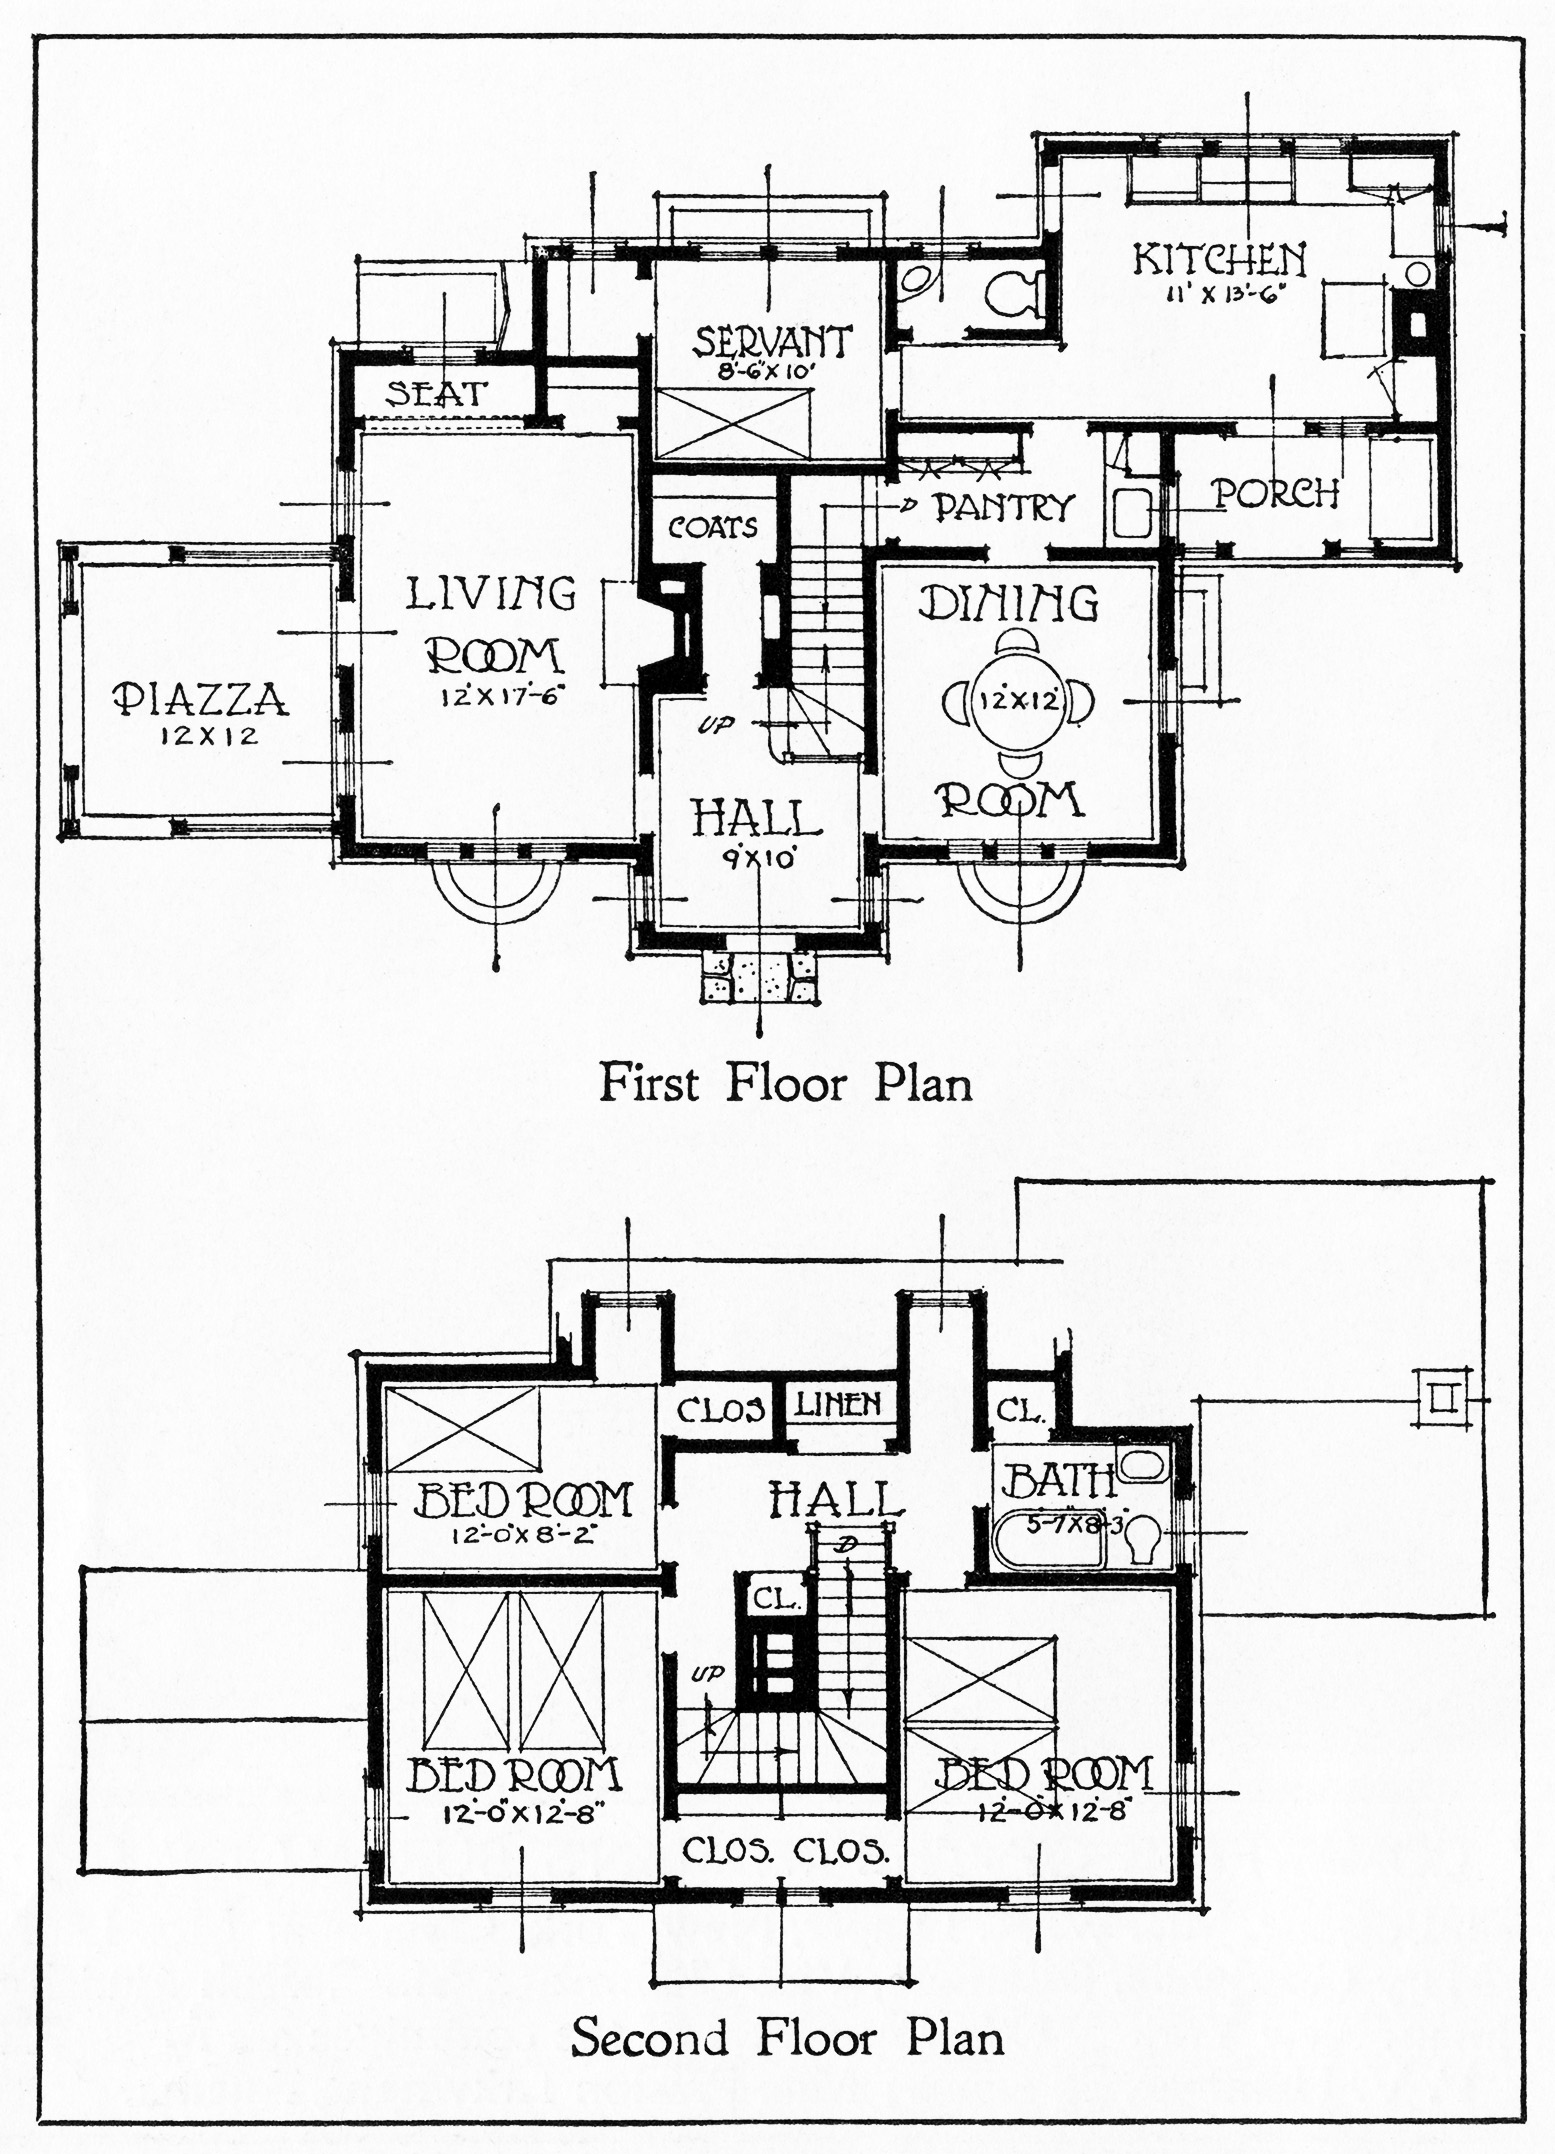 vintage house plans old fashioned home antique house clipart black and white house